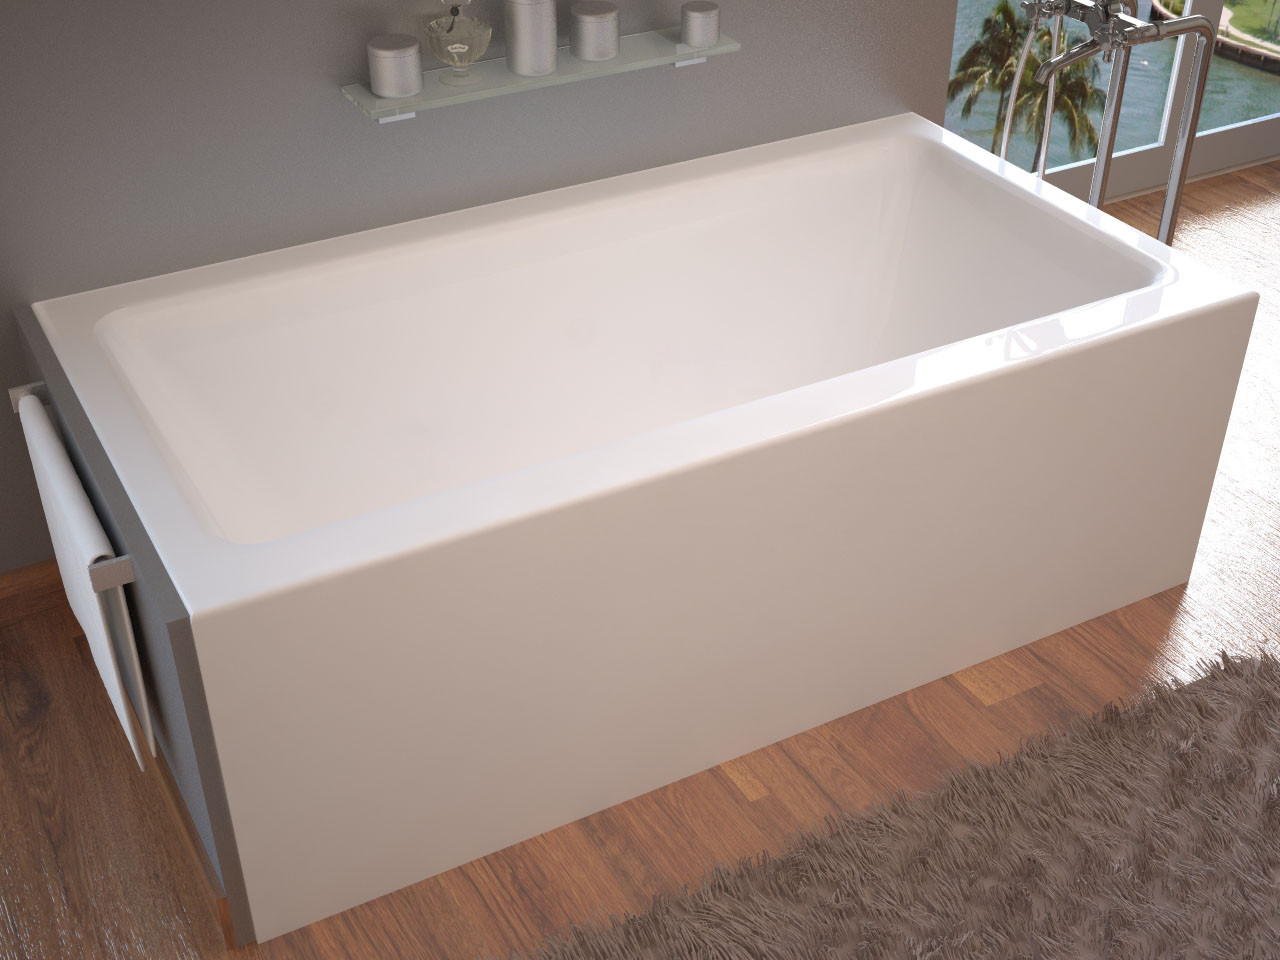 MediTub 3260SHAR Atlantis Whirlpools Soho Air Jet Bathtub With Right Drain